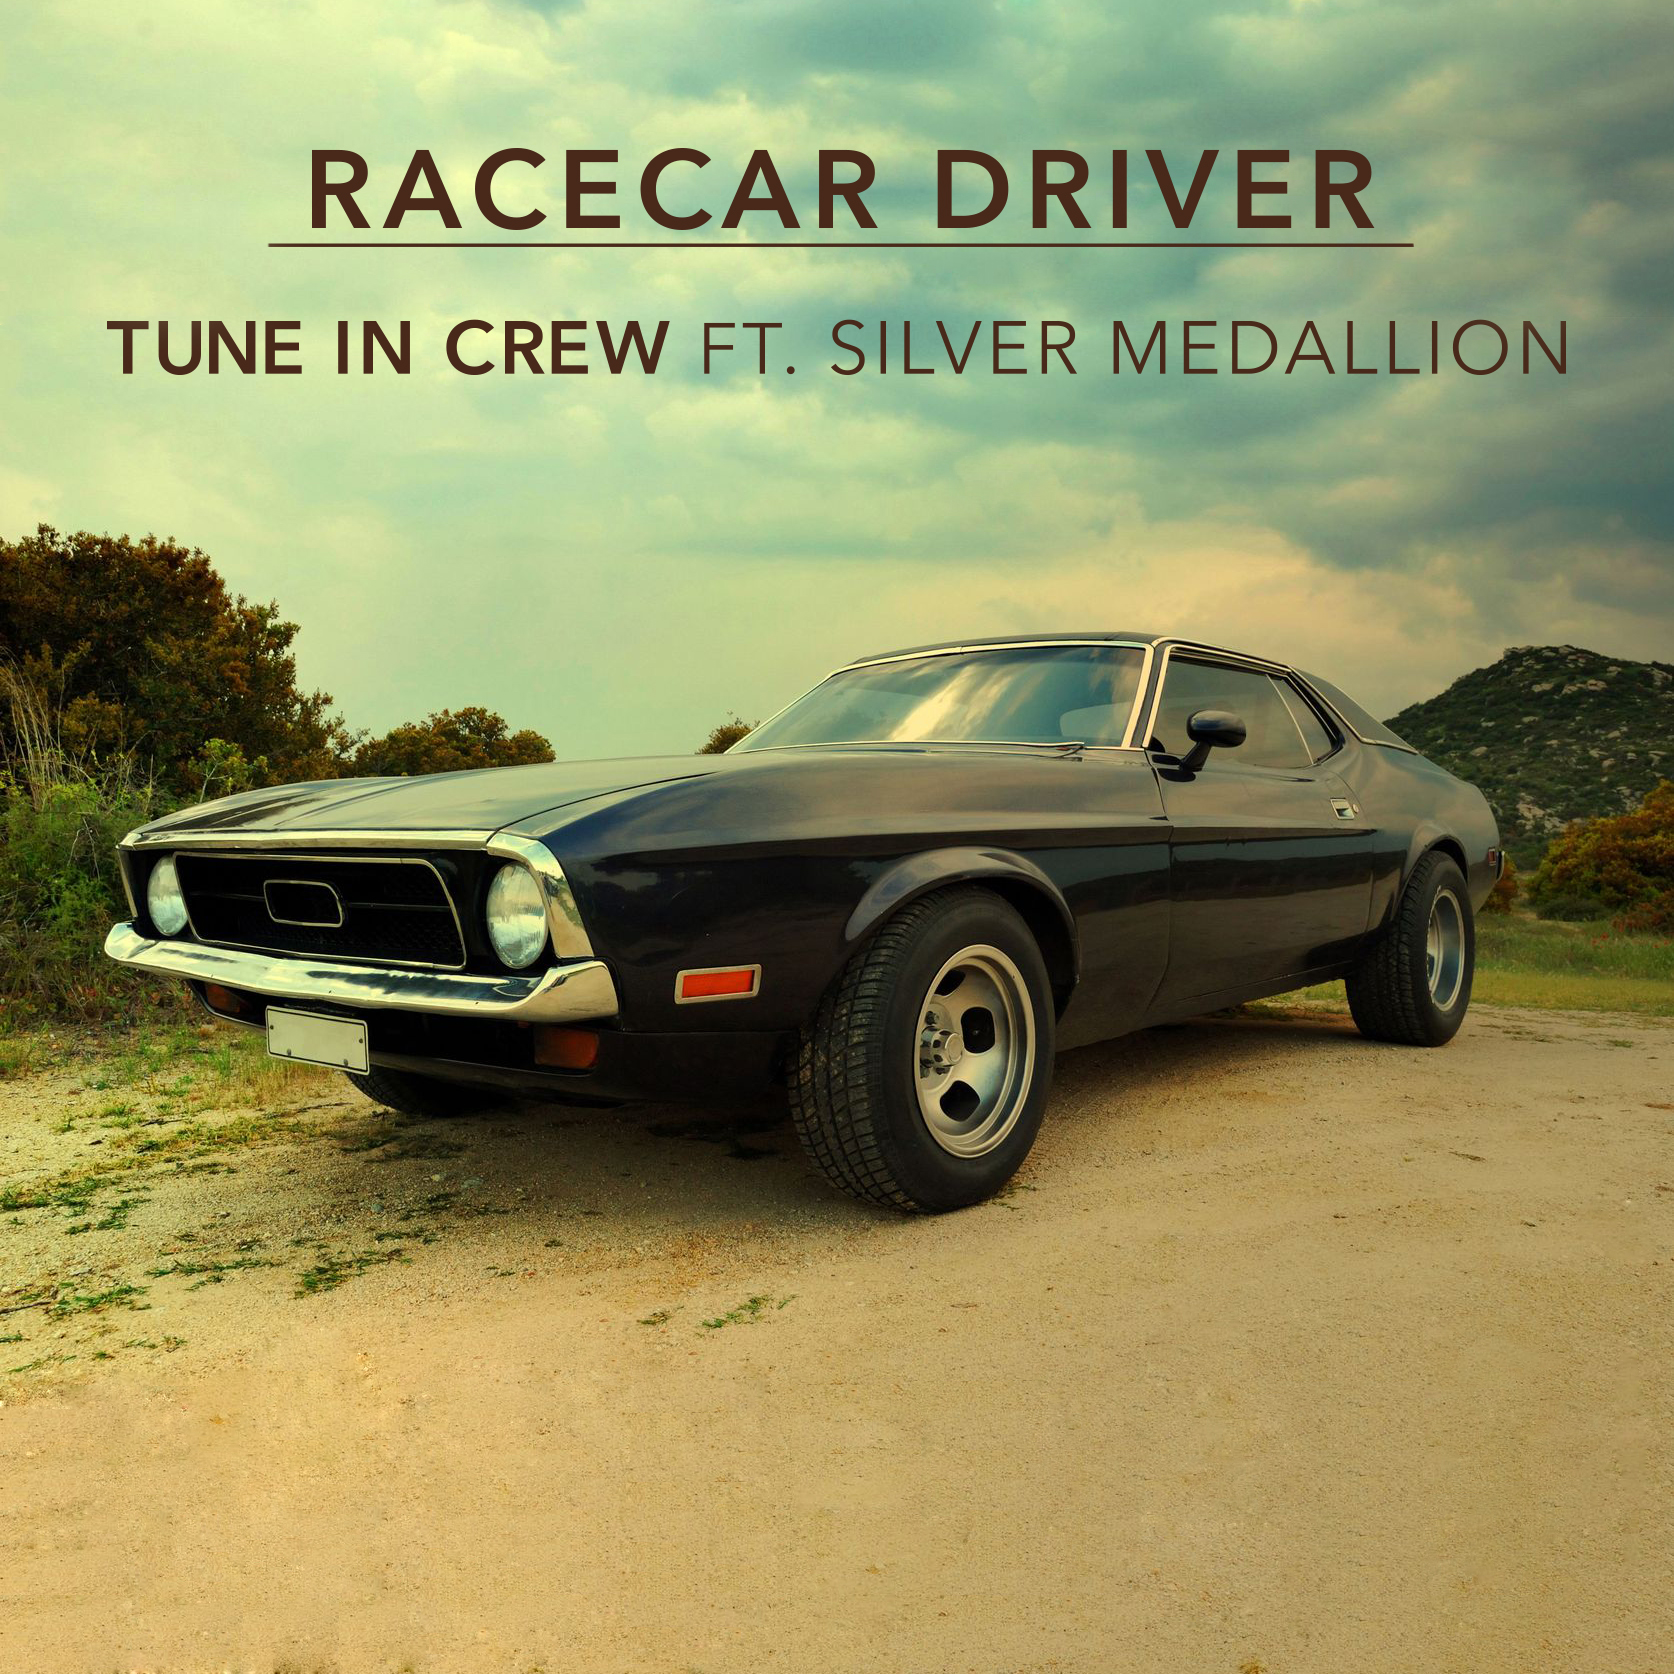 Tune In Crew ft Silver Medallion – Racecar Driver